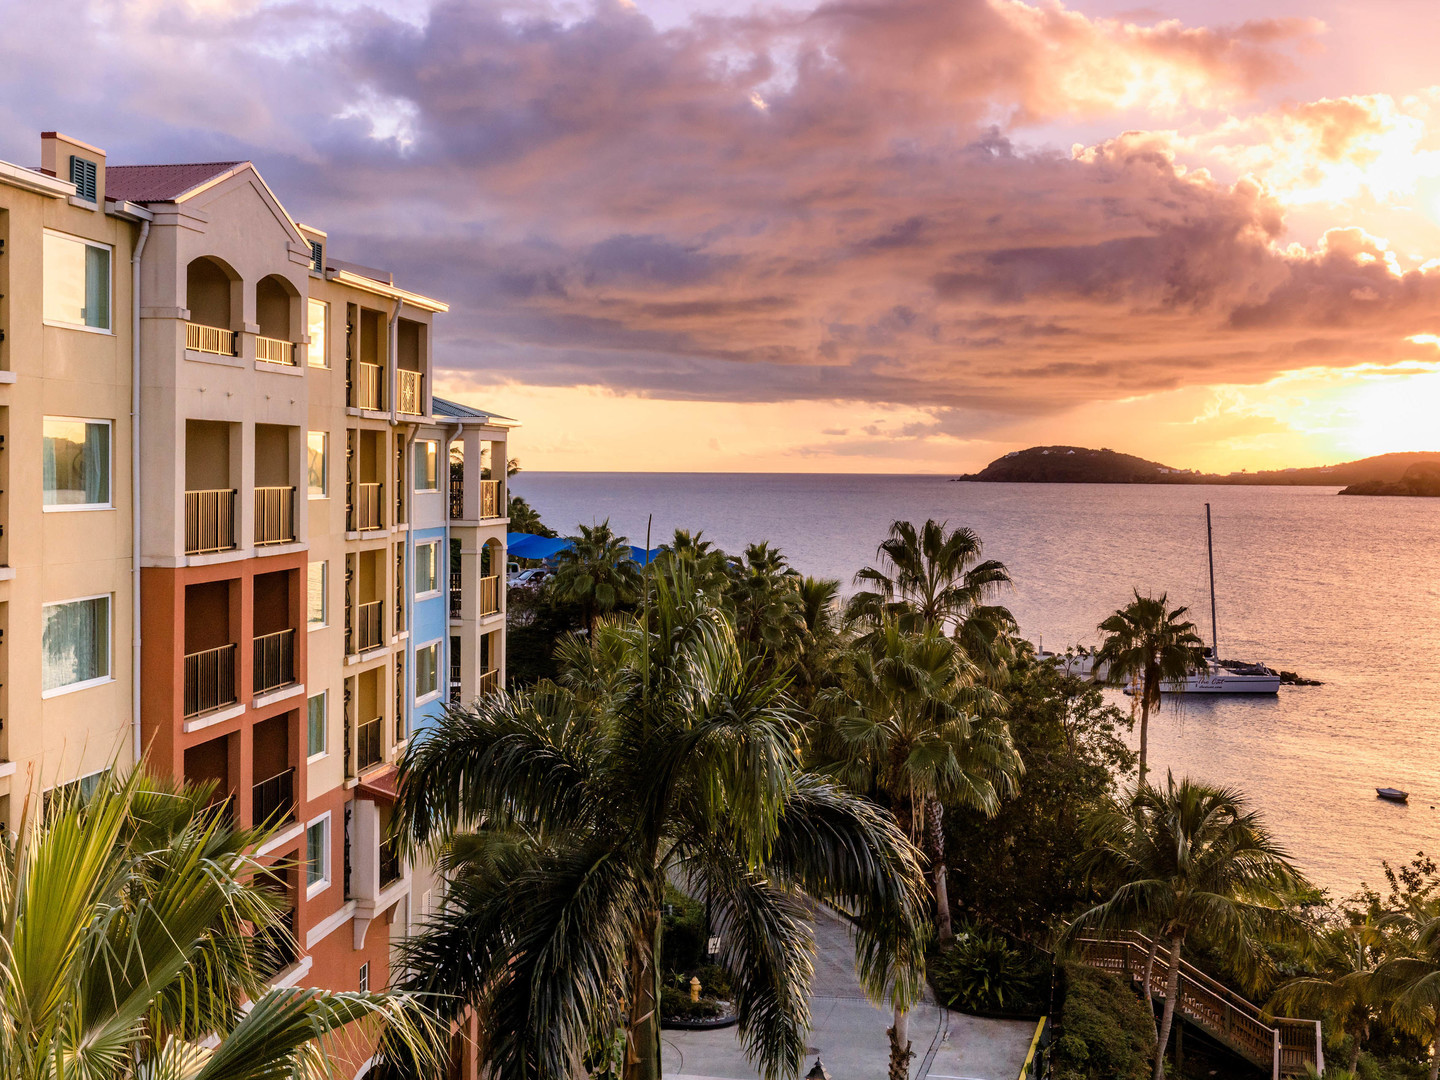 Marriott's Frenchman's Cove Building Exterior. Marriott's Frenchman's Cove is located in St. Thomas, US Virgin Islands United States.